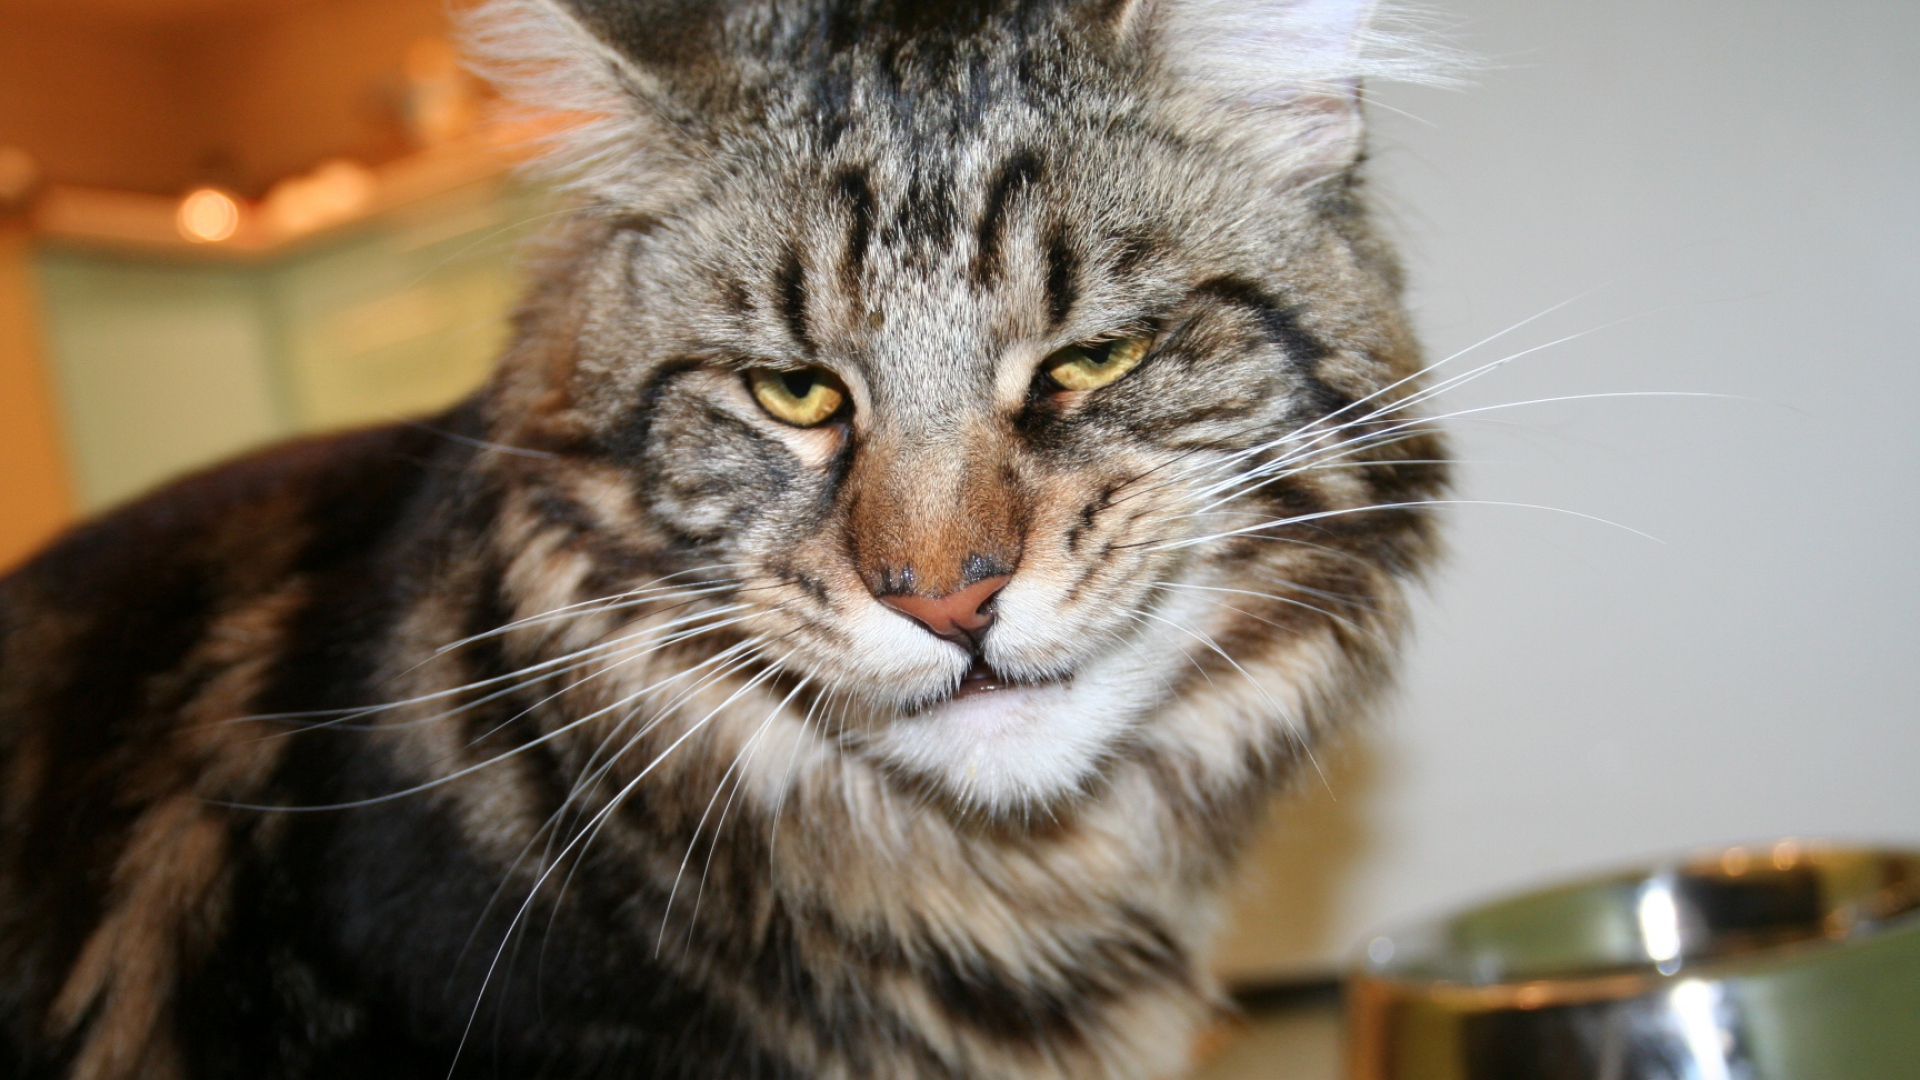 Cat Maine coon Face Frustration Wallpaper Background Full HD 1080p 1920x1080